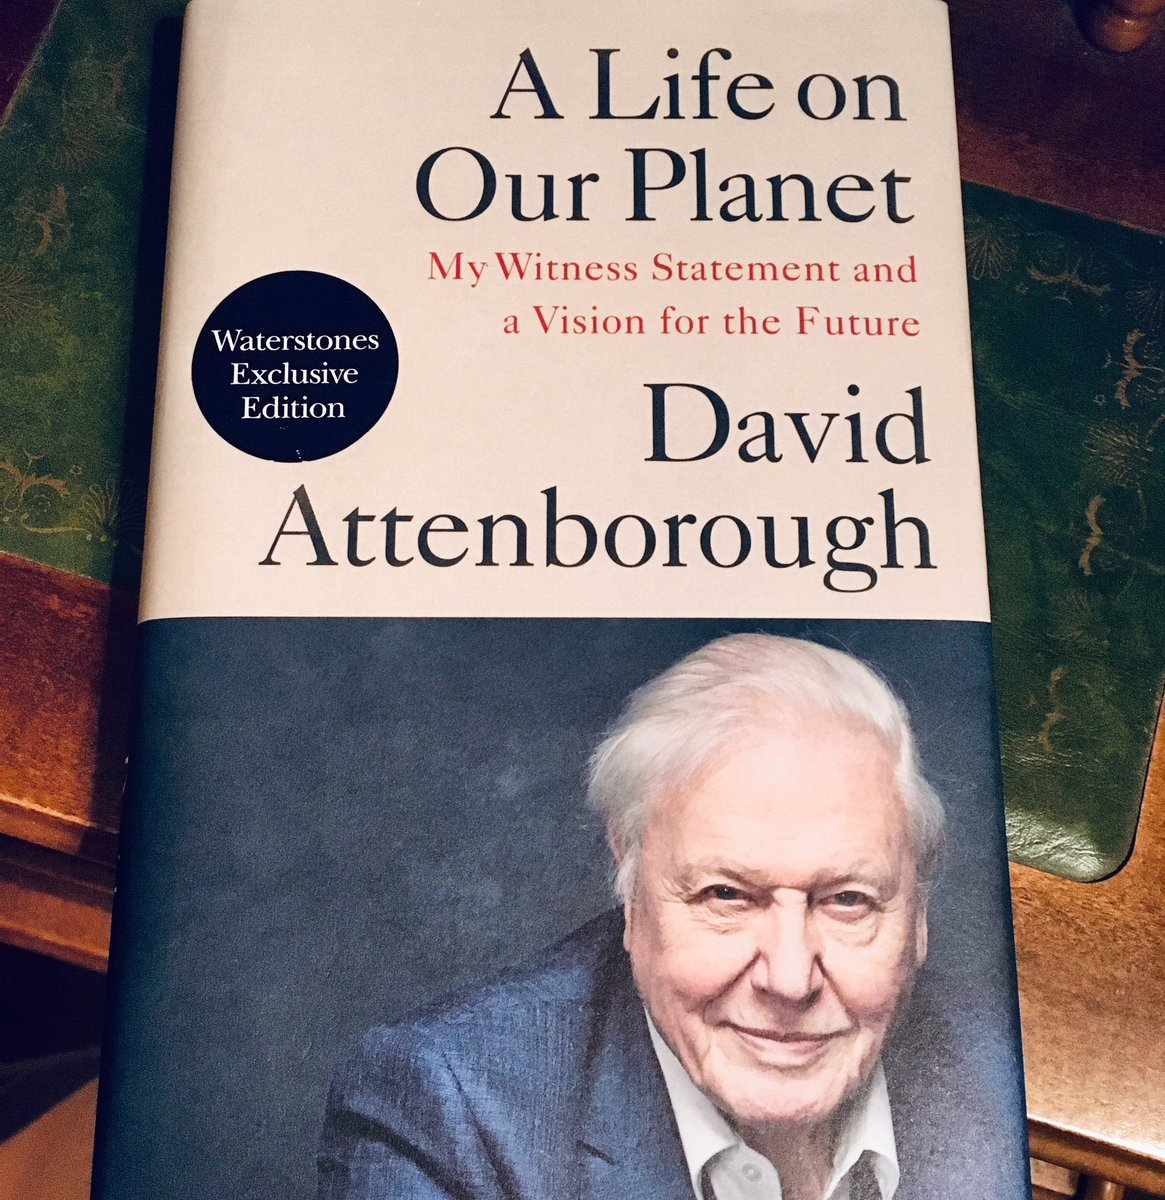 My most recent book review is up on Instagram:    #book #books #bookreview #bookreviews #DavidAttenborough #sirdavidattenborough #alifeonourplanet